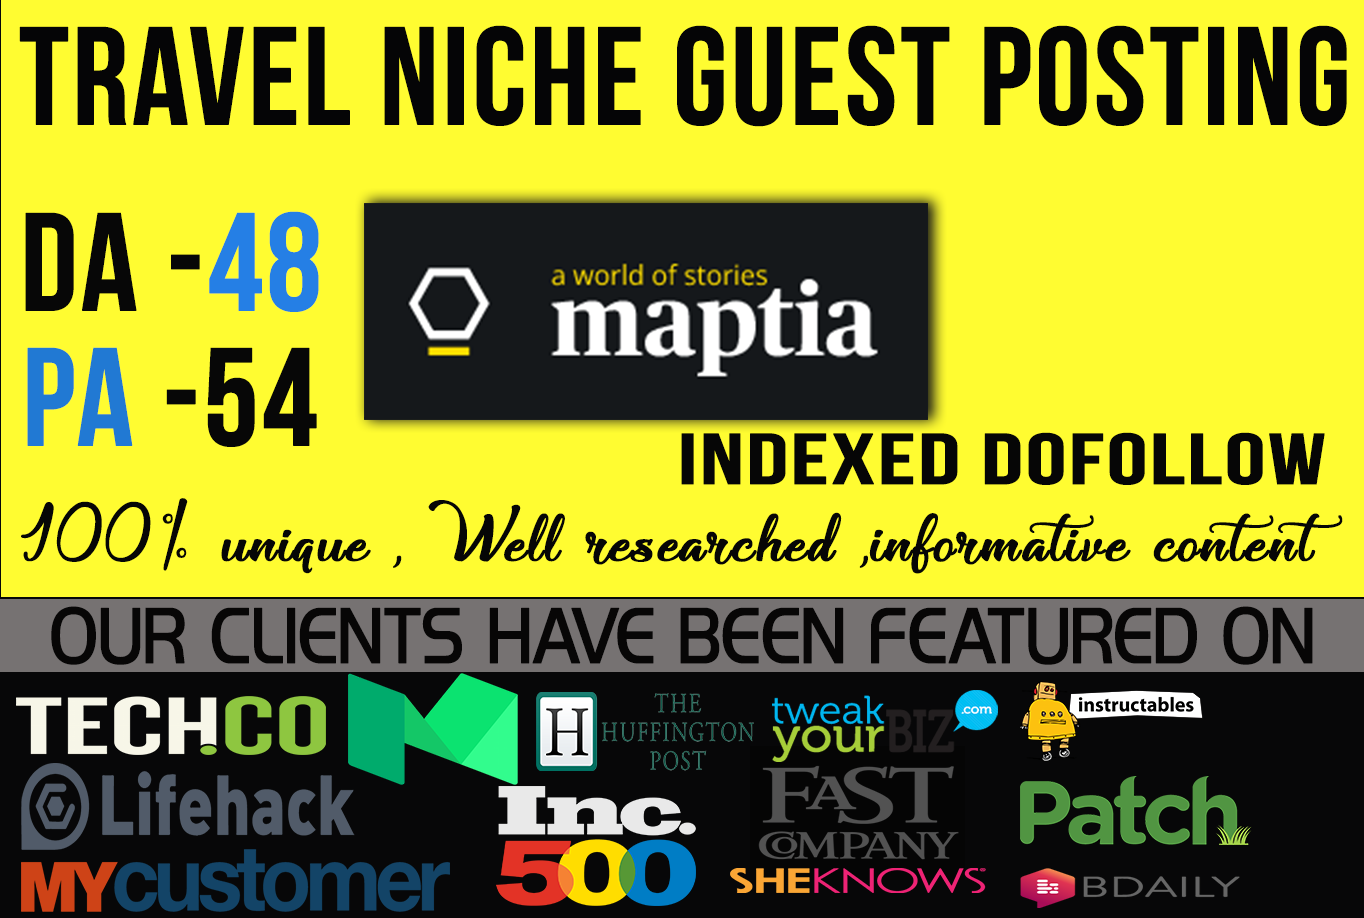 Get you dofollow backlink by guest post from high authority travel sites Mapta()com DA55